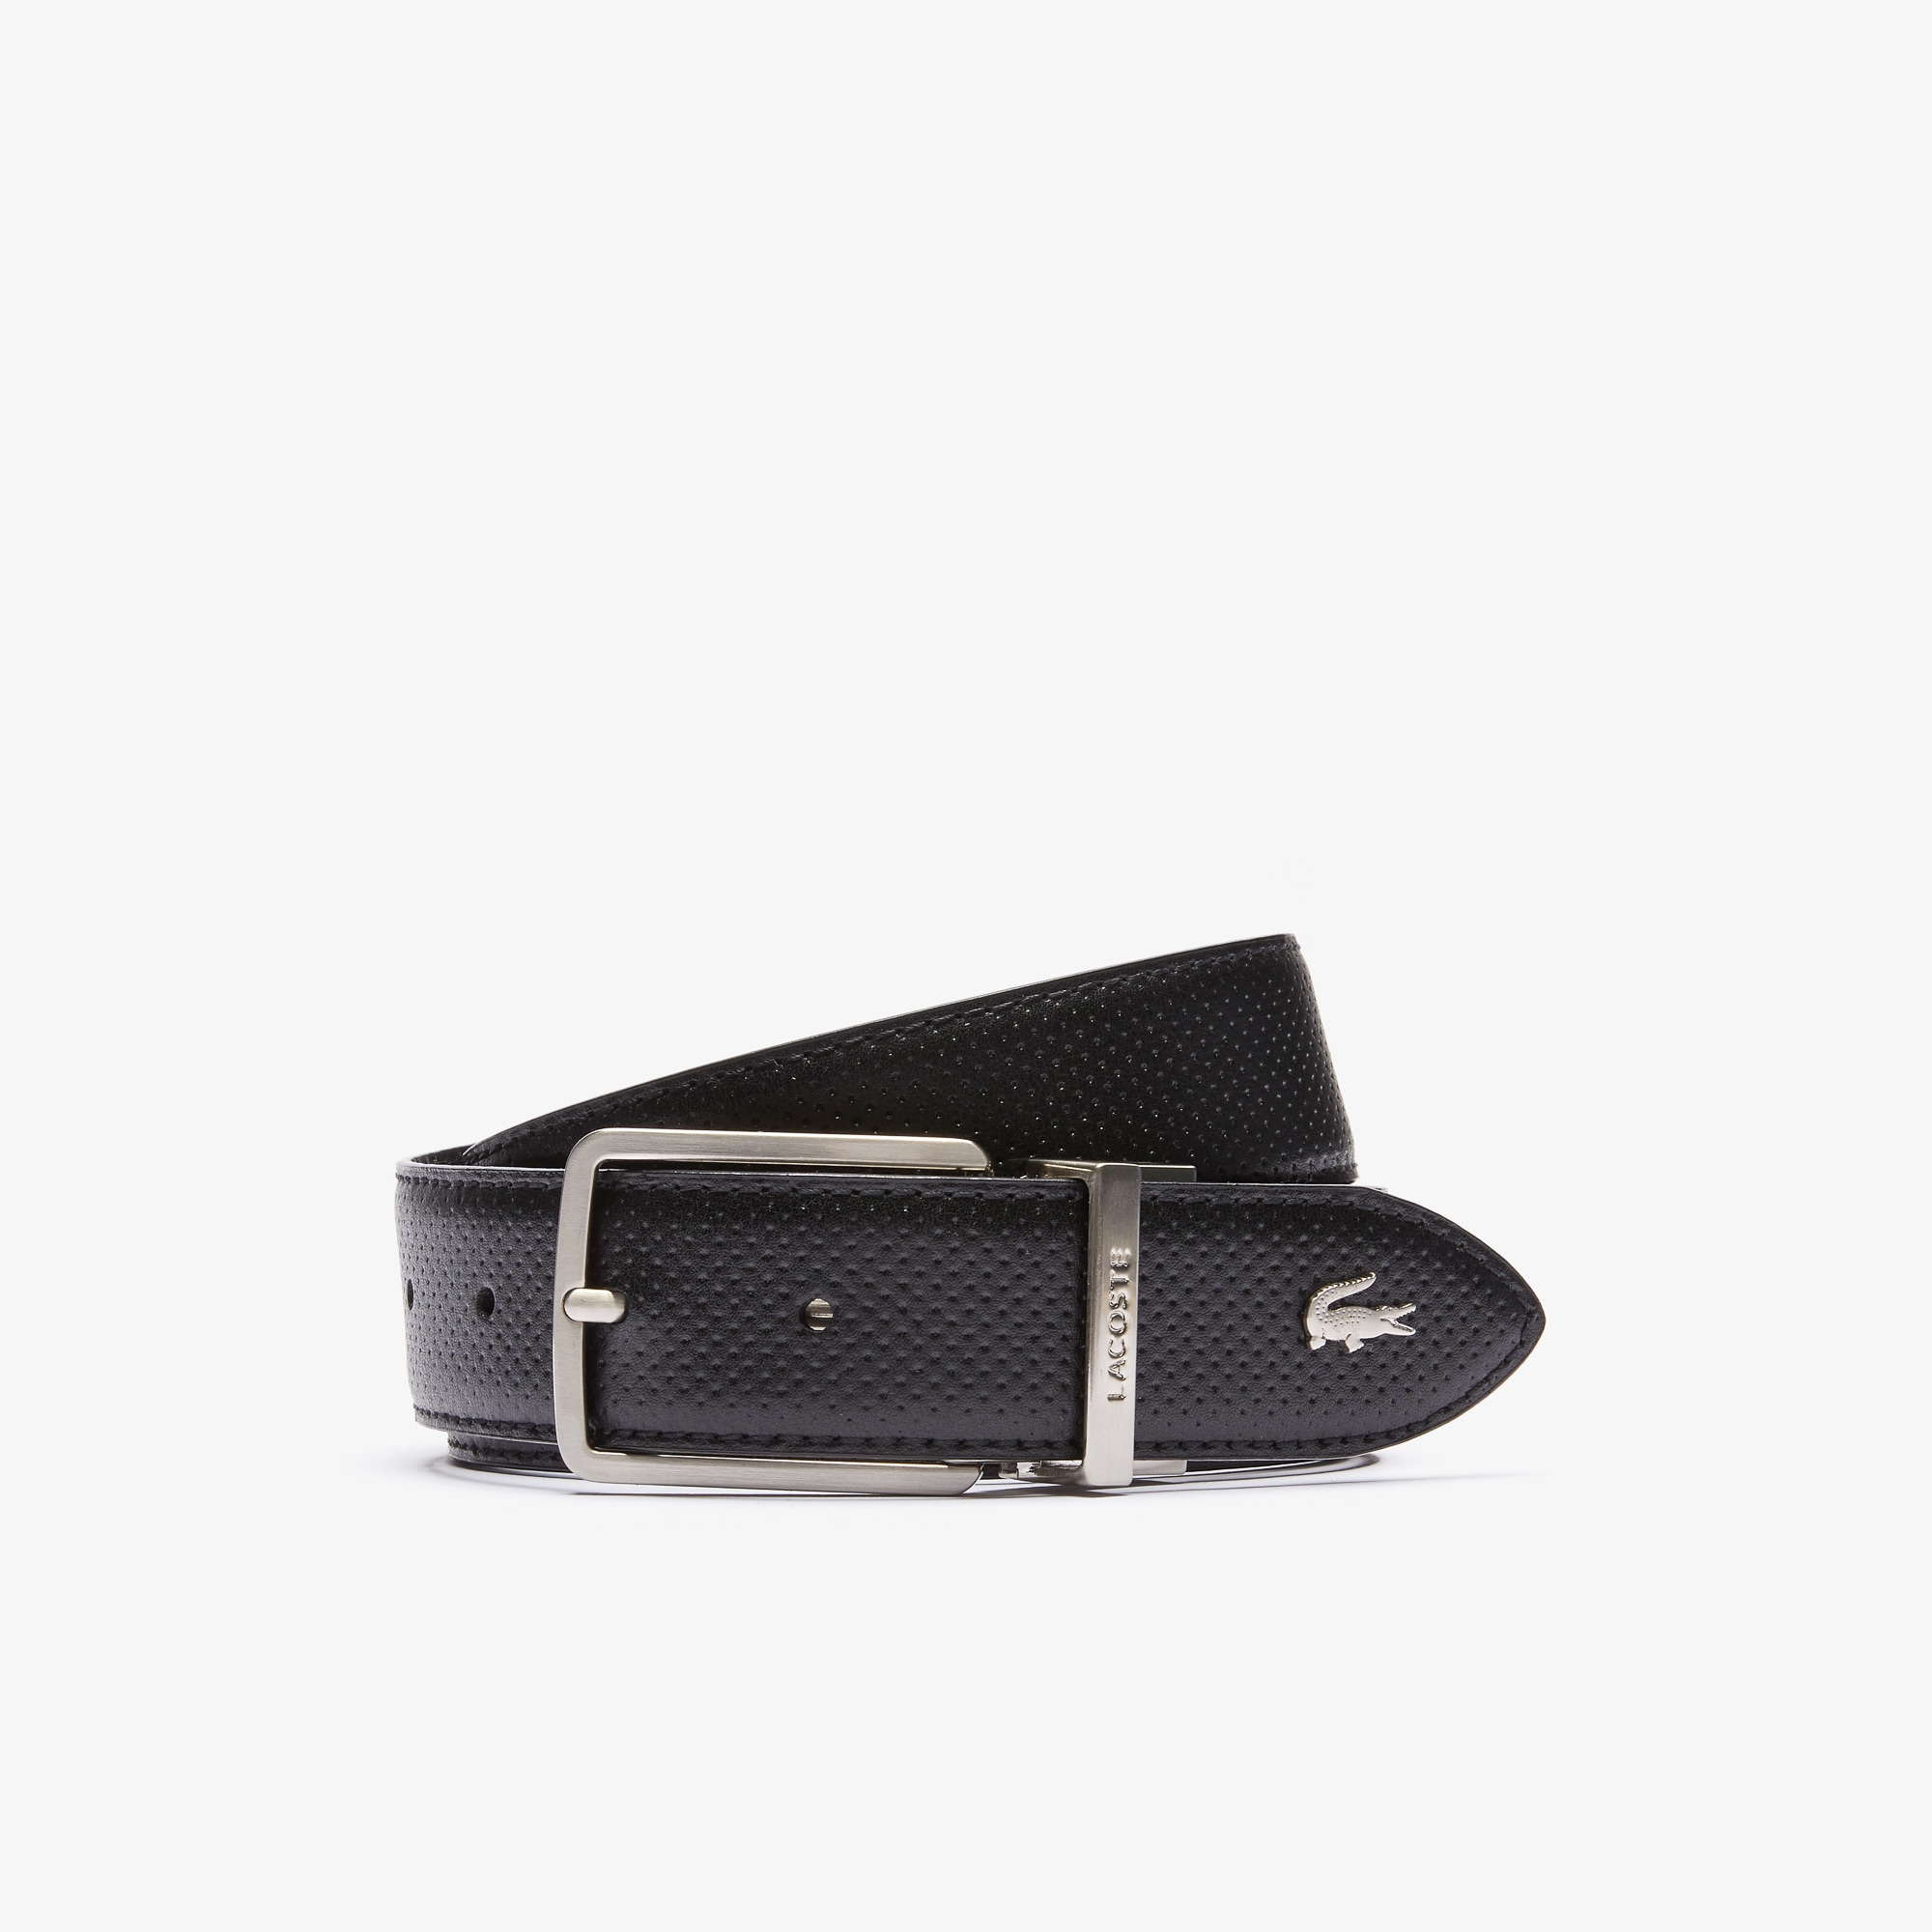 f301f48638 Men's Lacoste Engraved Buckle Reversible Piqué Leather Belt